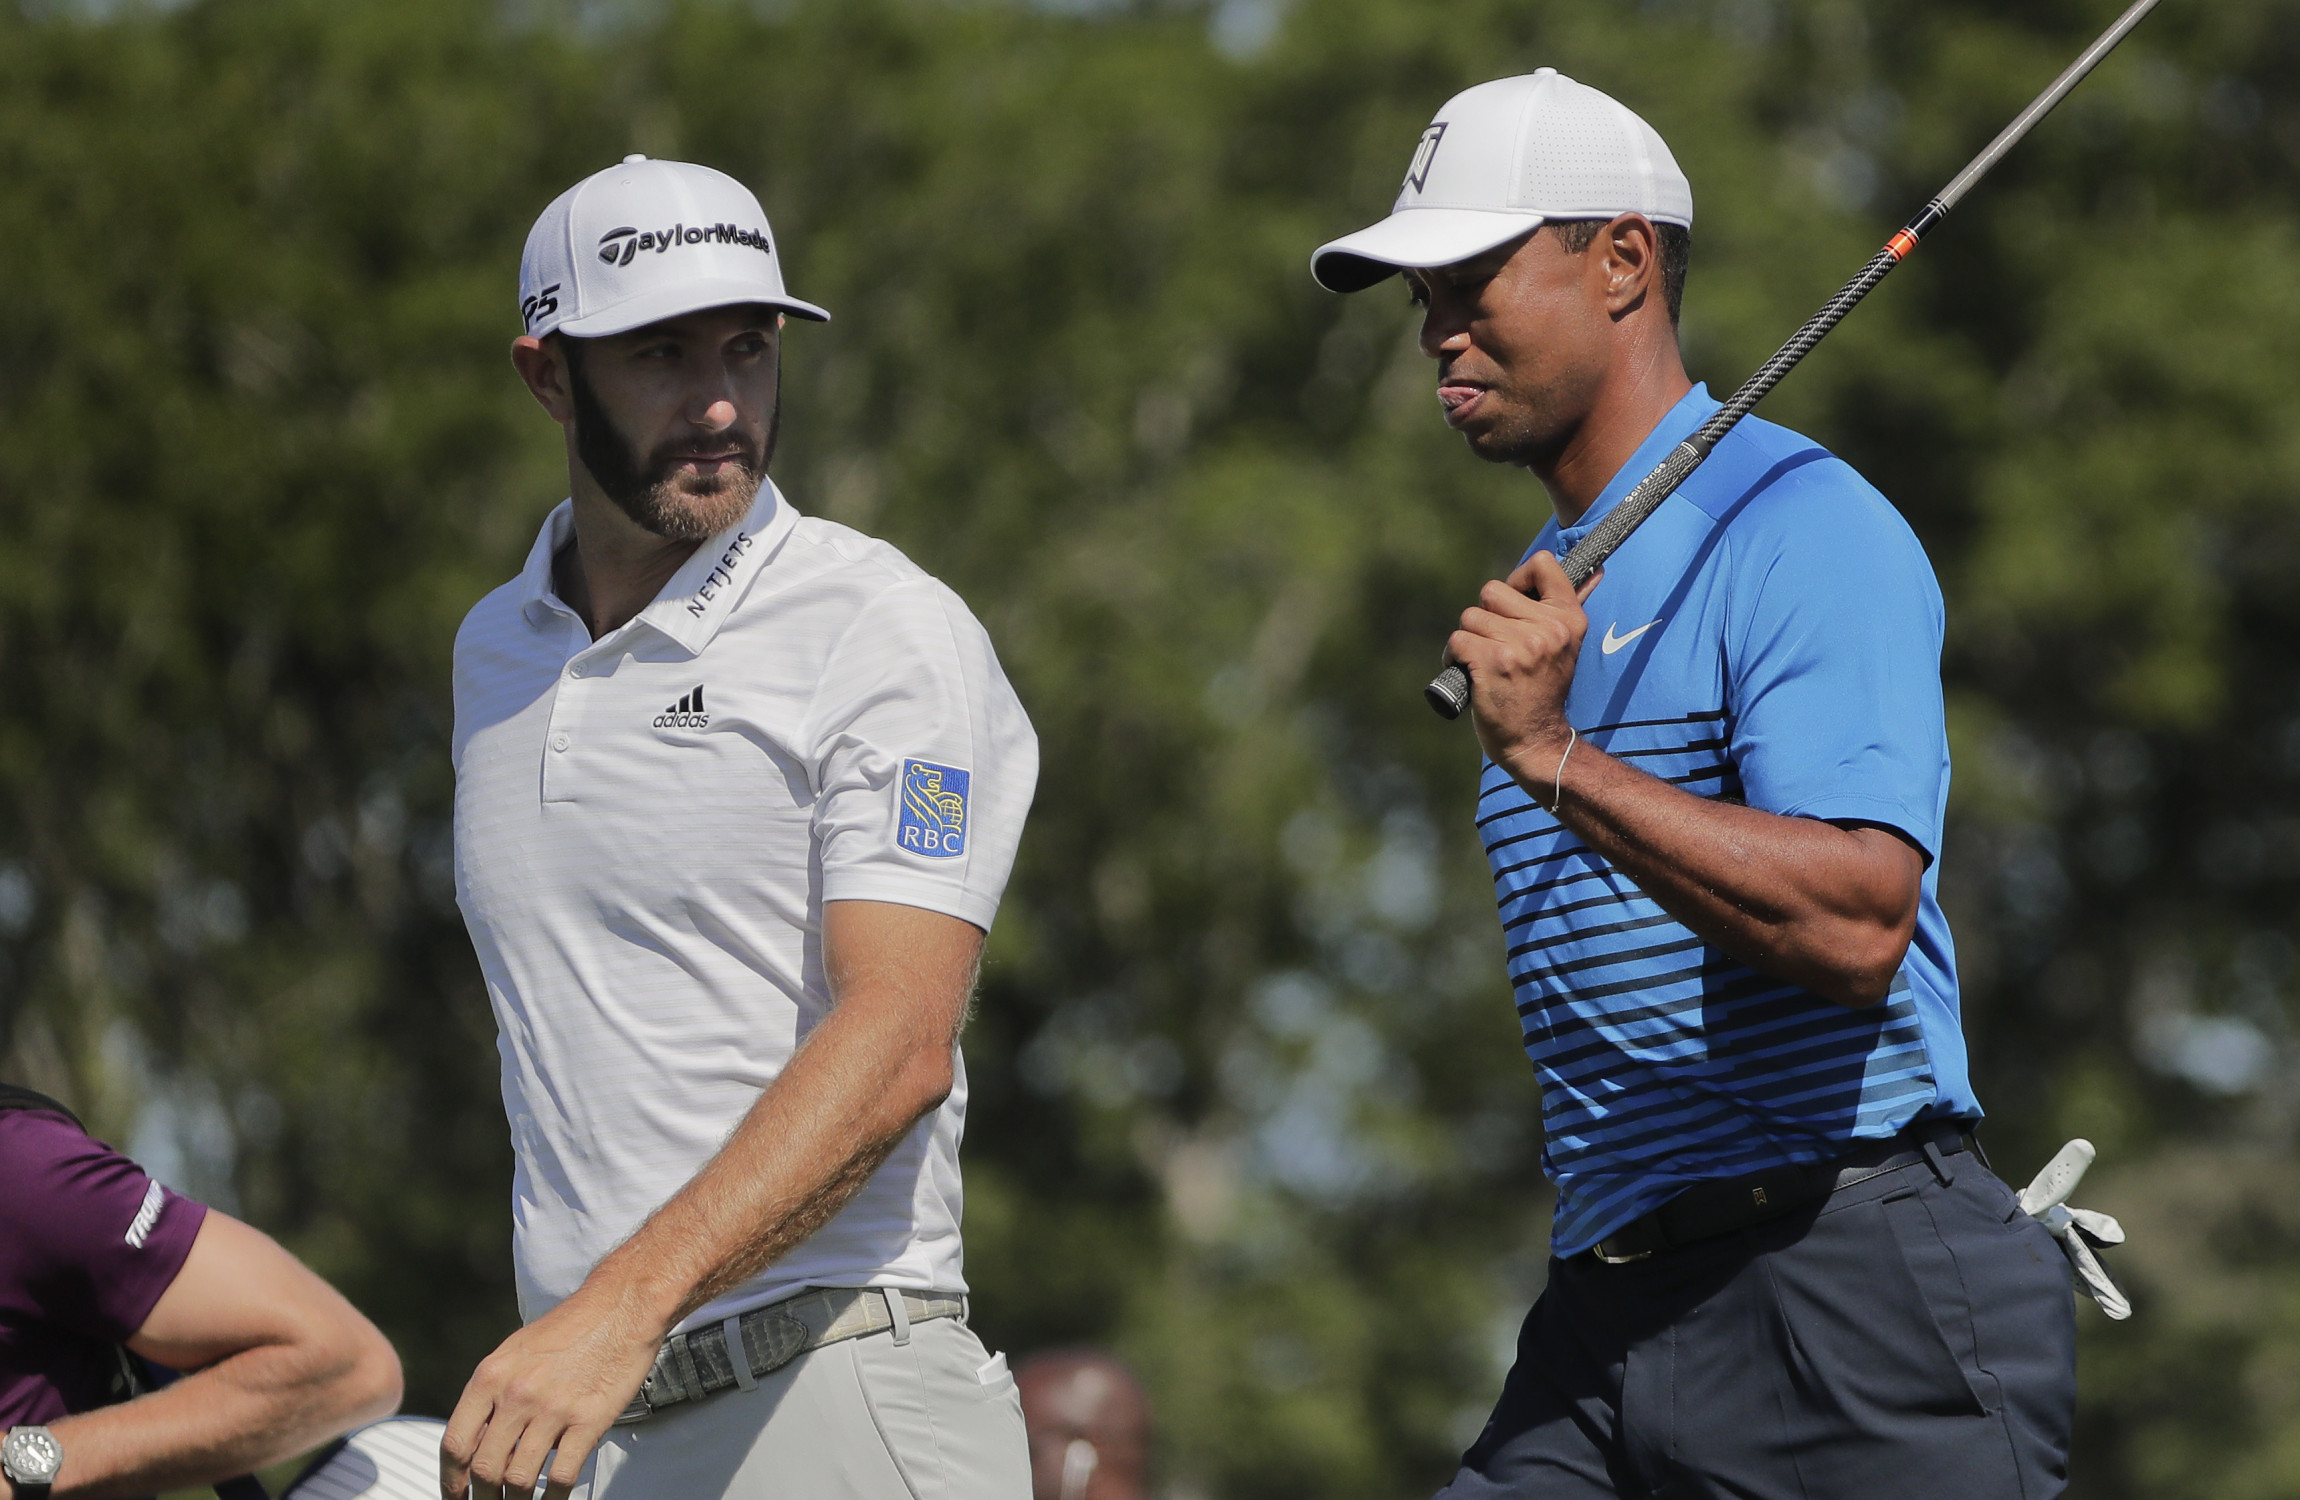 Jason Day among stars having US Open shockers